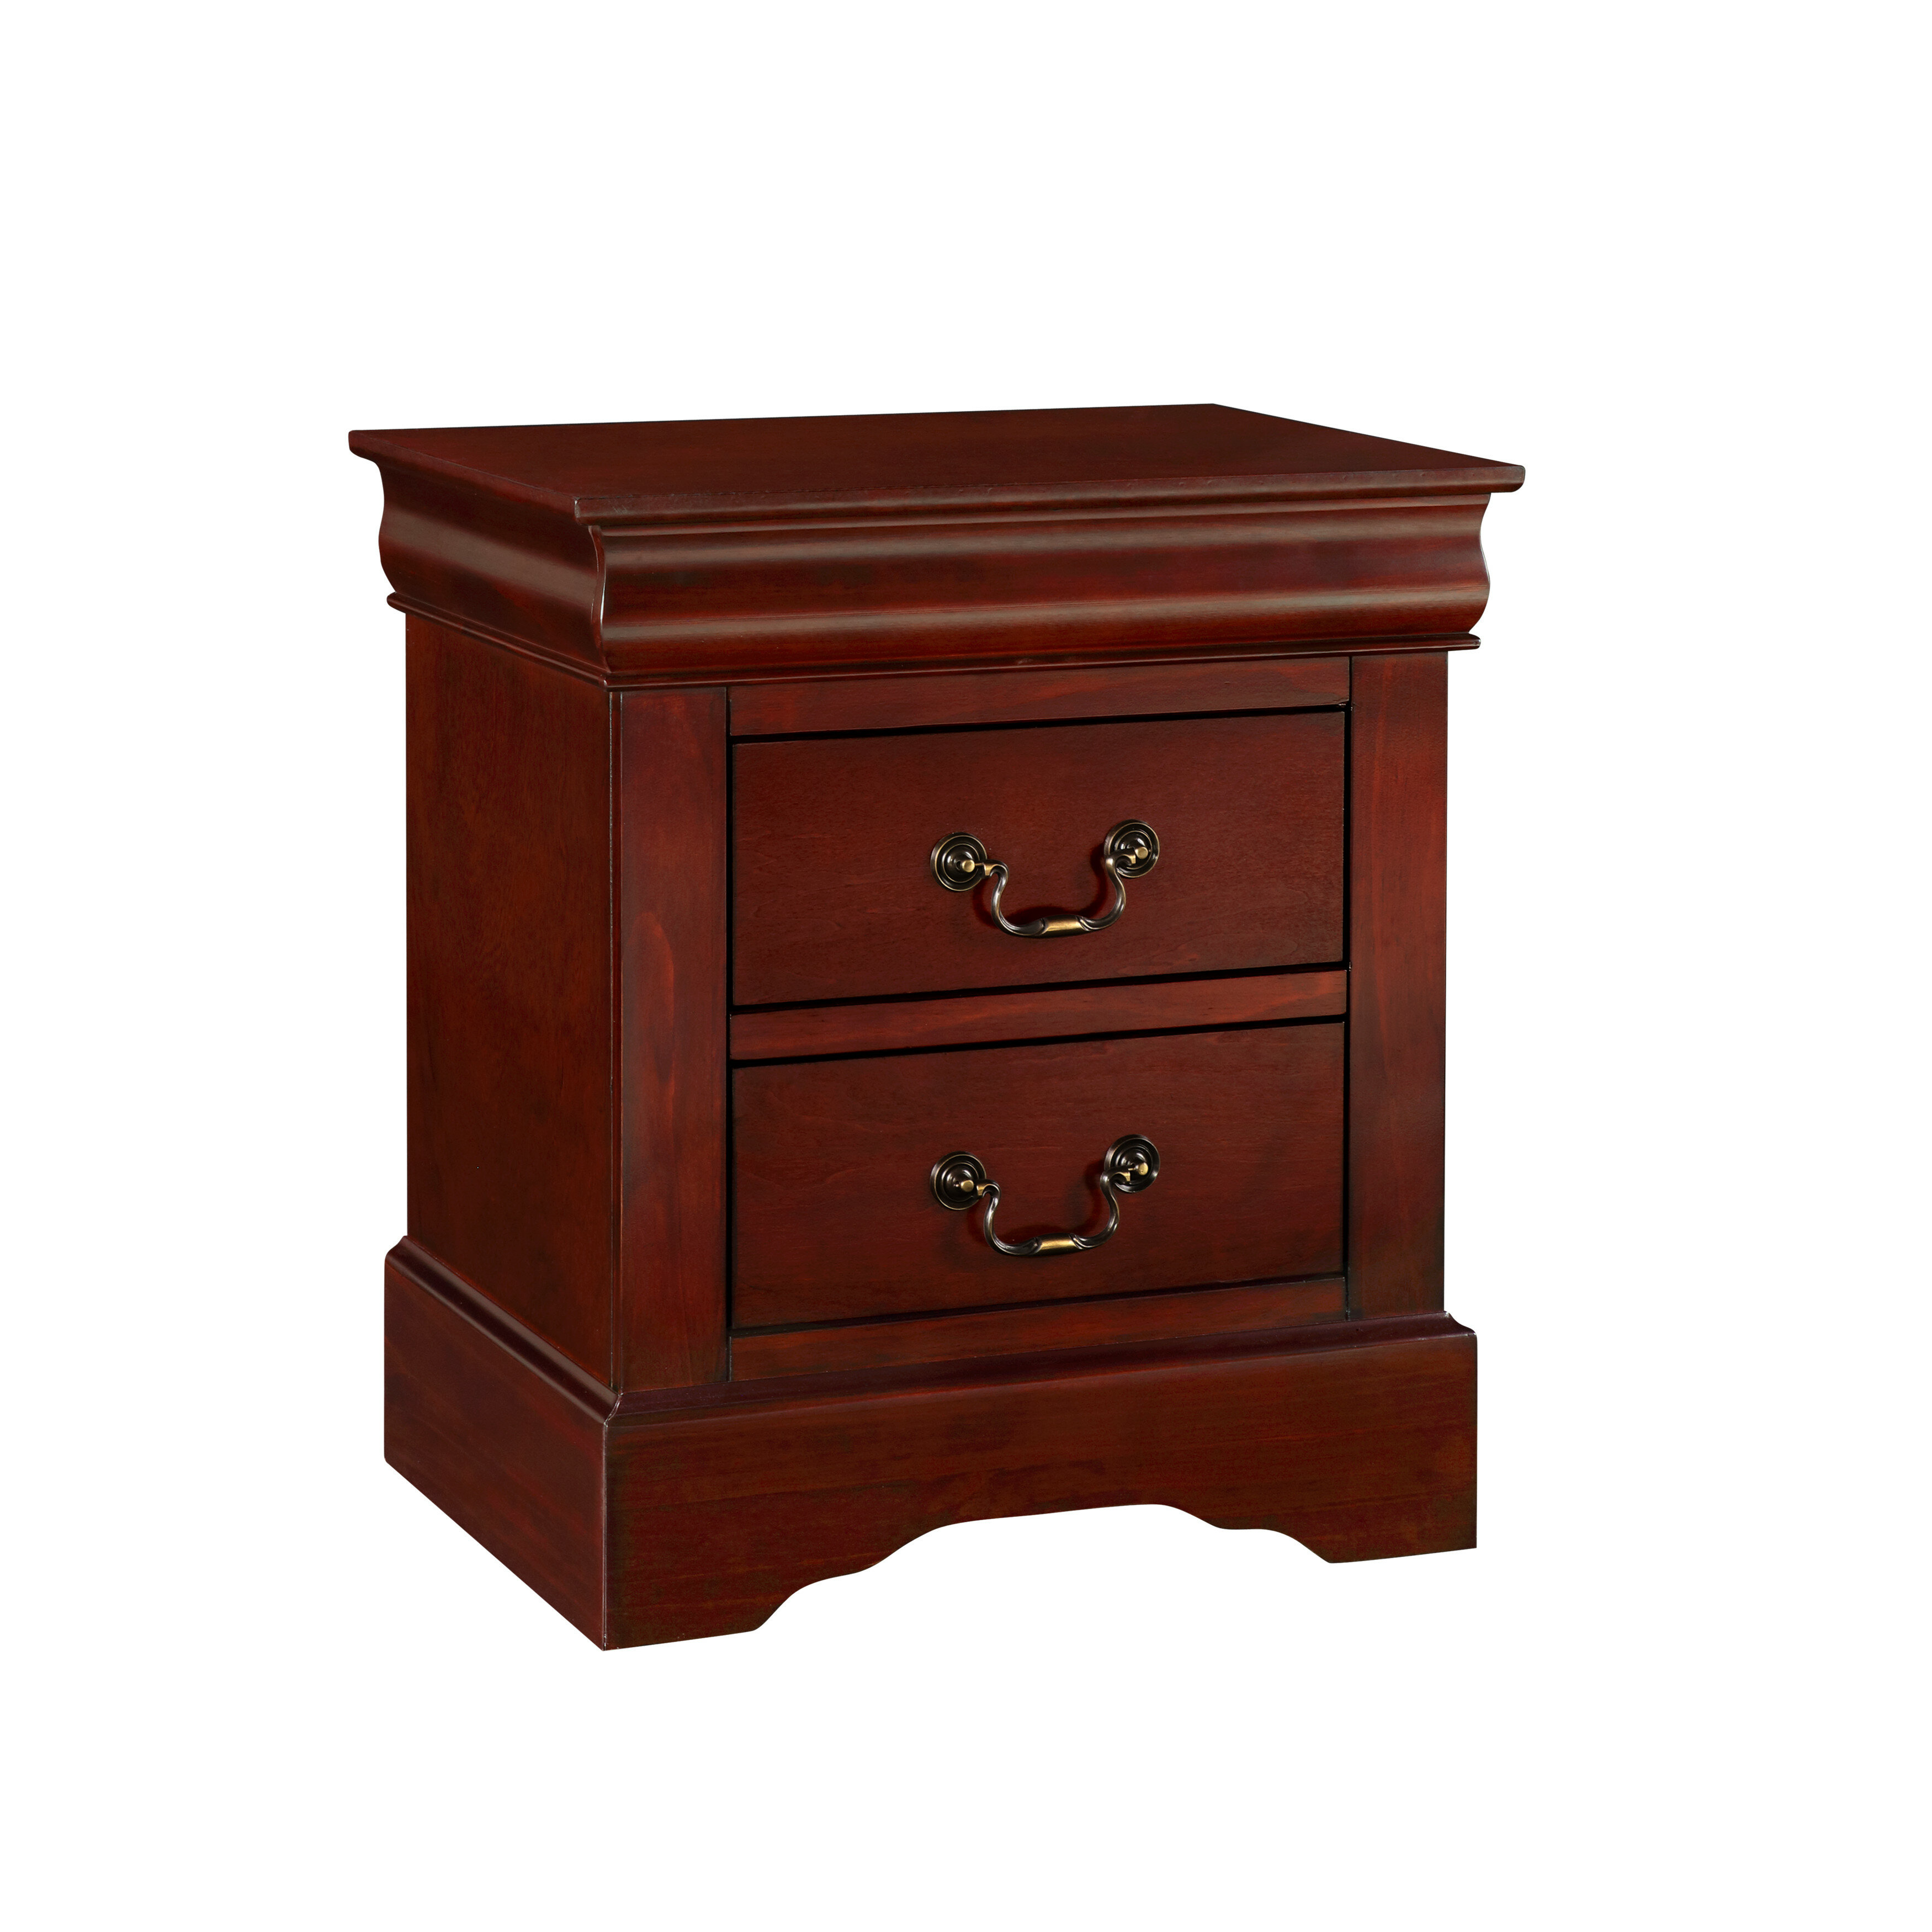 Standard Furniture Lewiston Nightstand Black